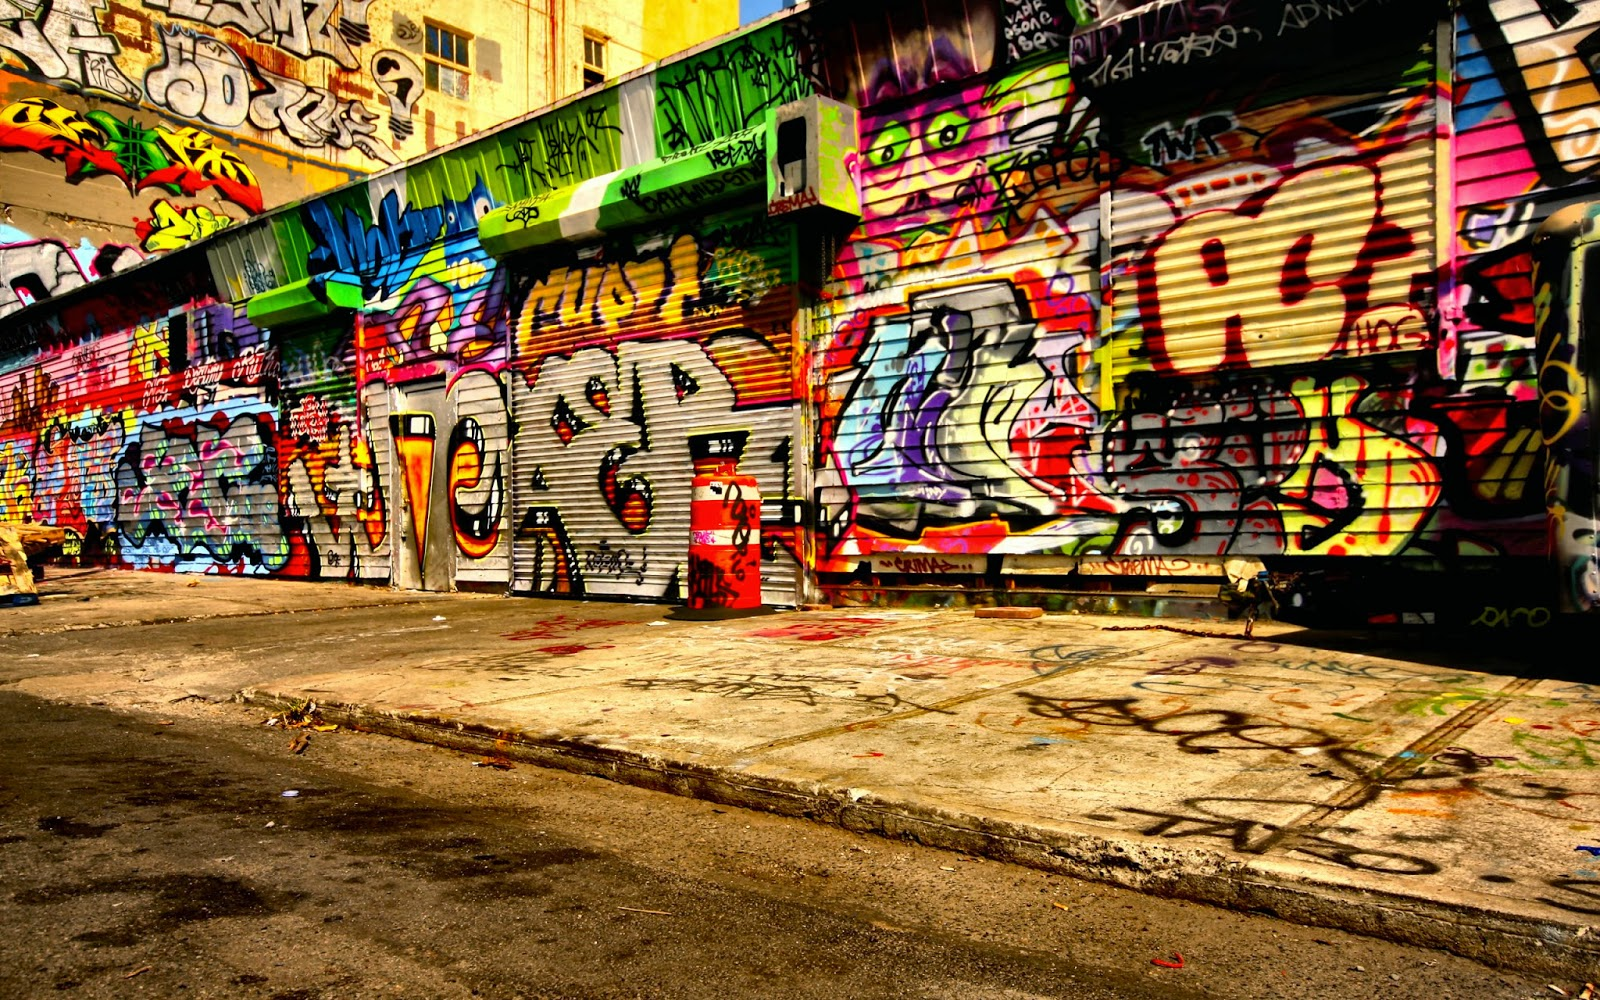 Some amazing street graffiti wallpaper my free for Graffiti wallpaper